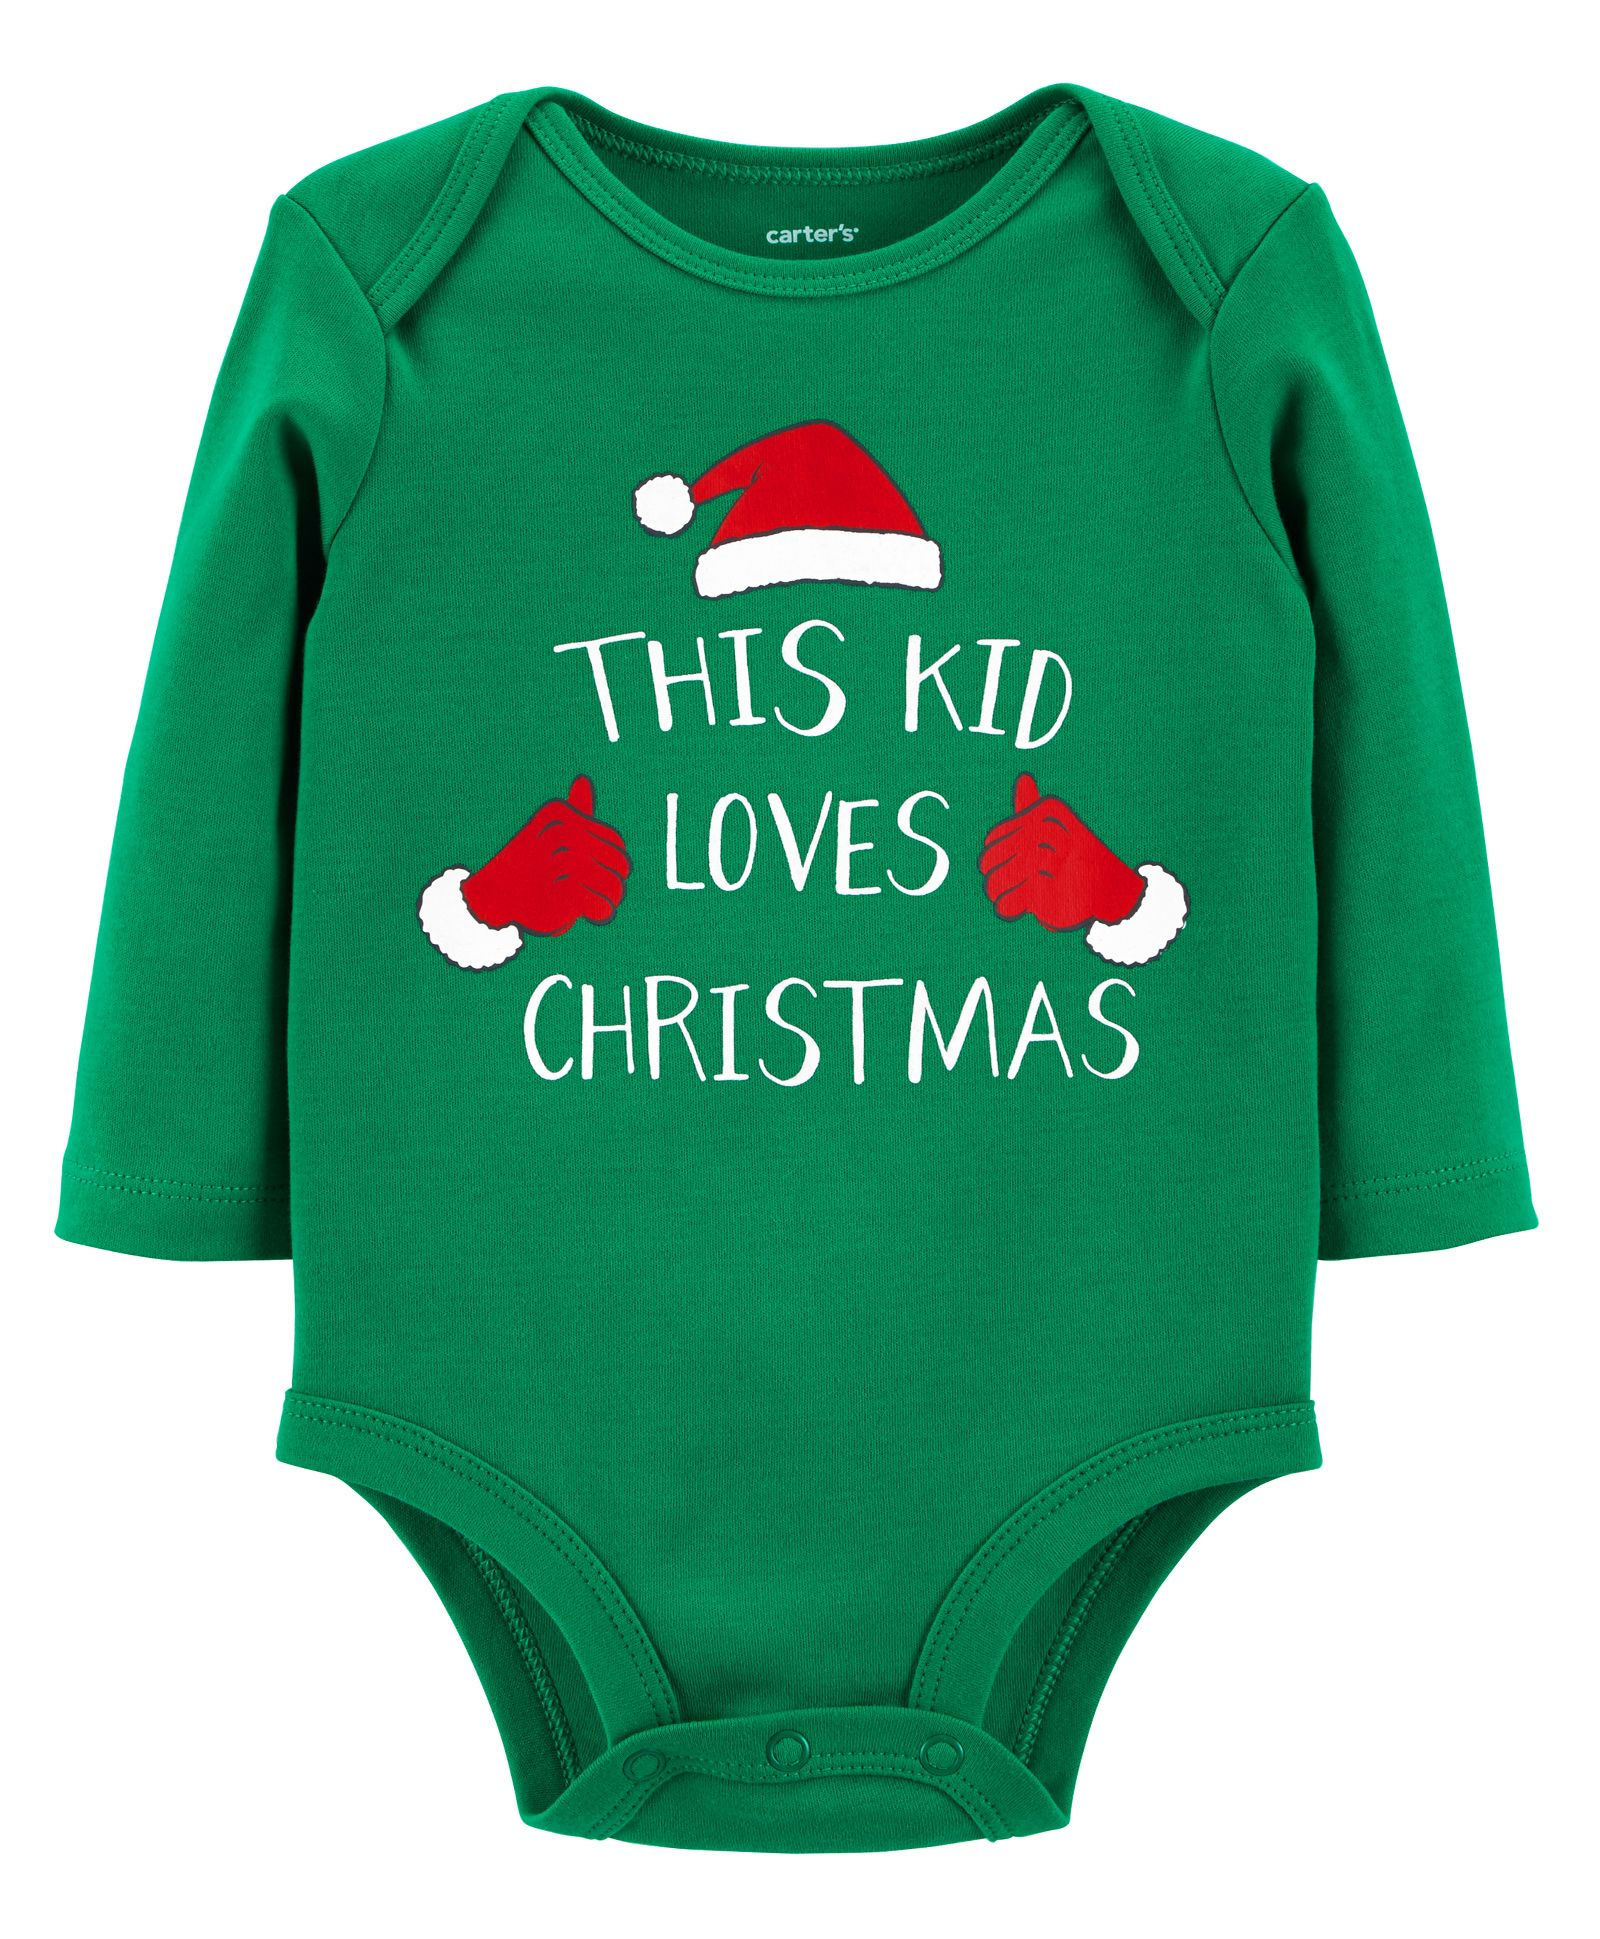 00f96d4b7 Carter's Full Sleeves Christmas Collectible Bodysuit - Green. 18 to 24  Months ...